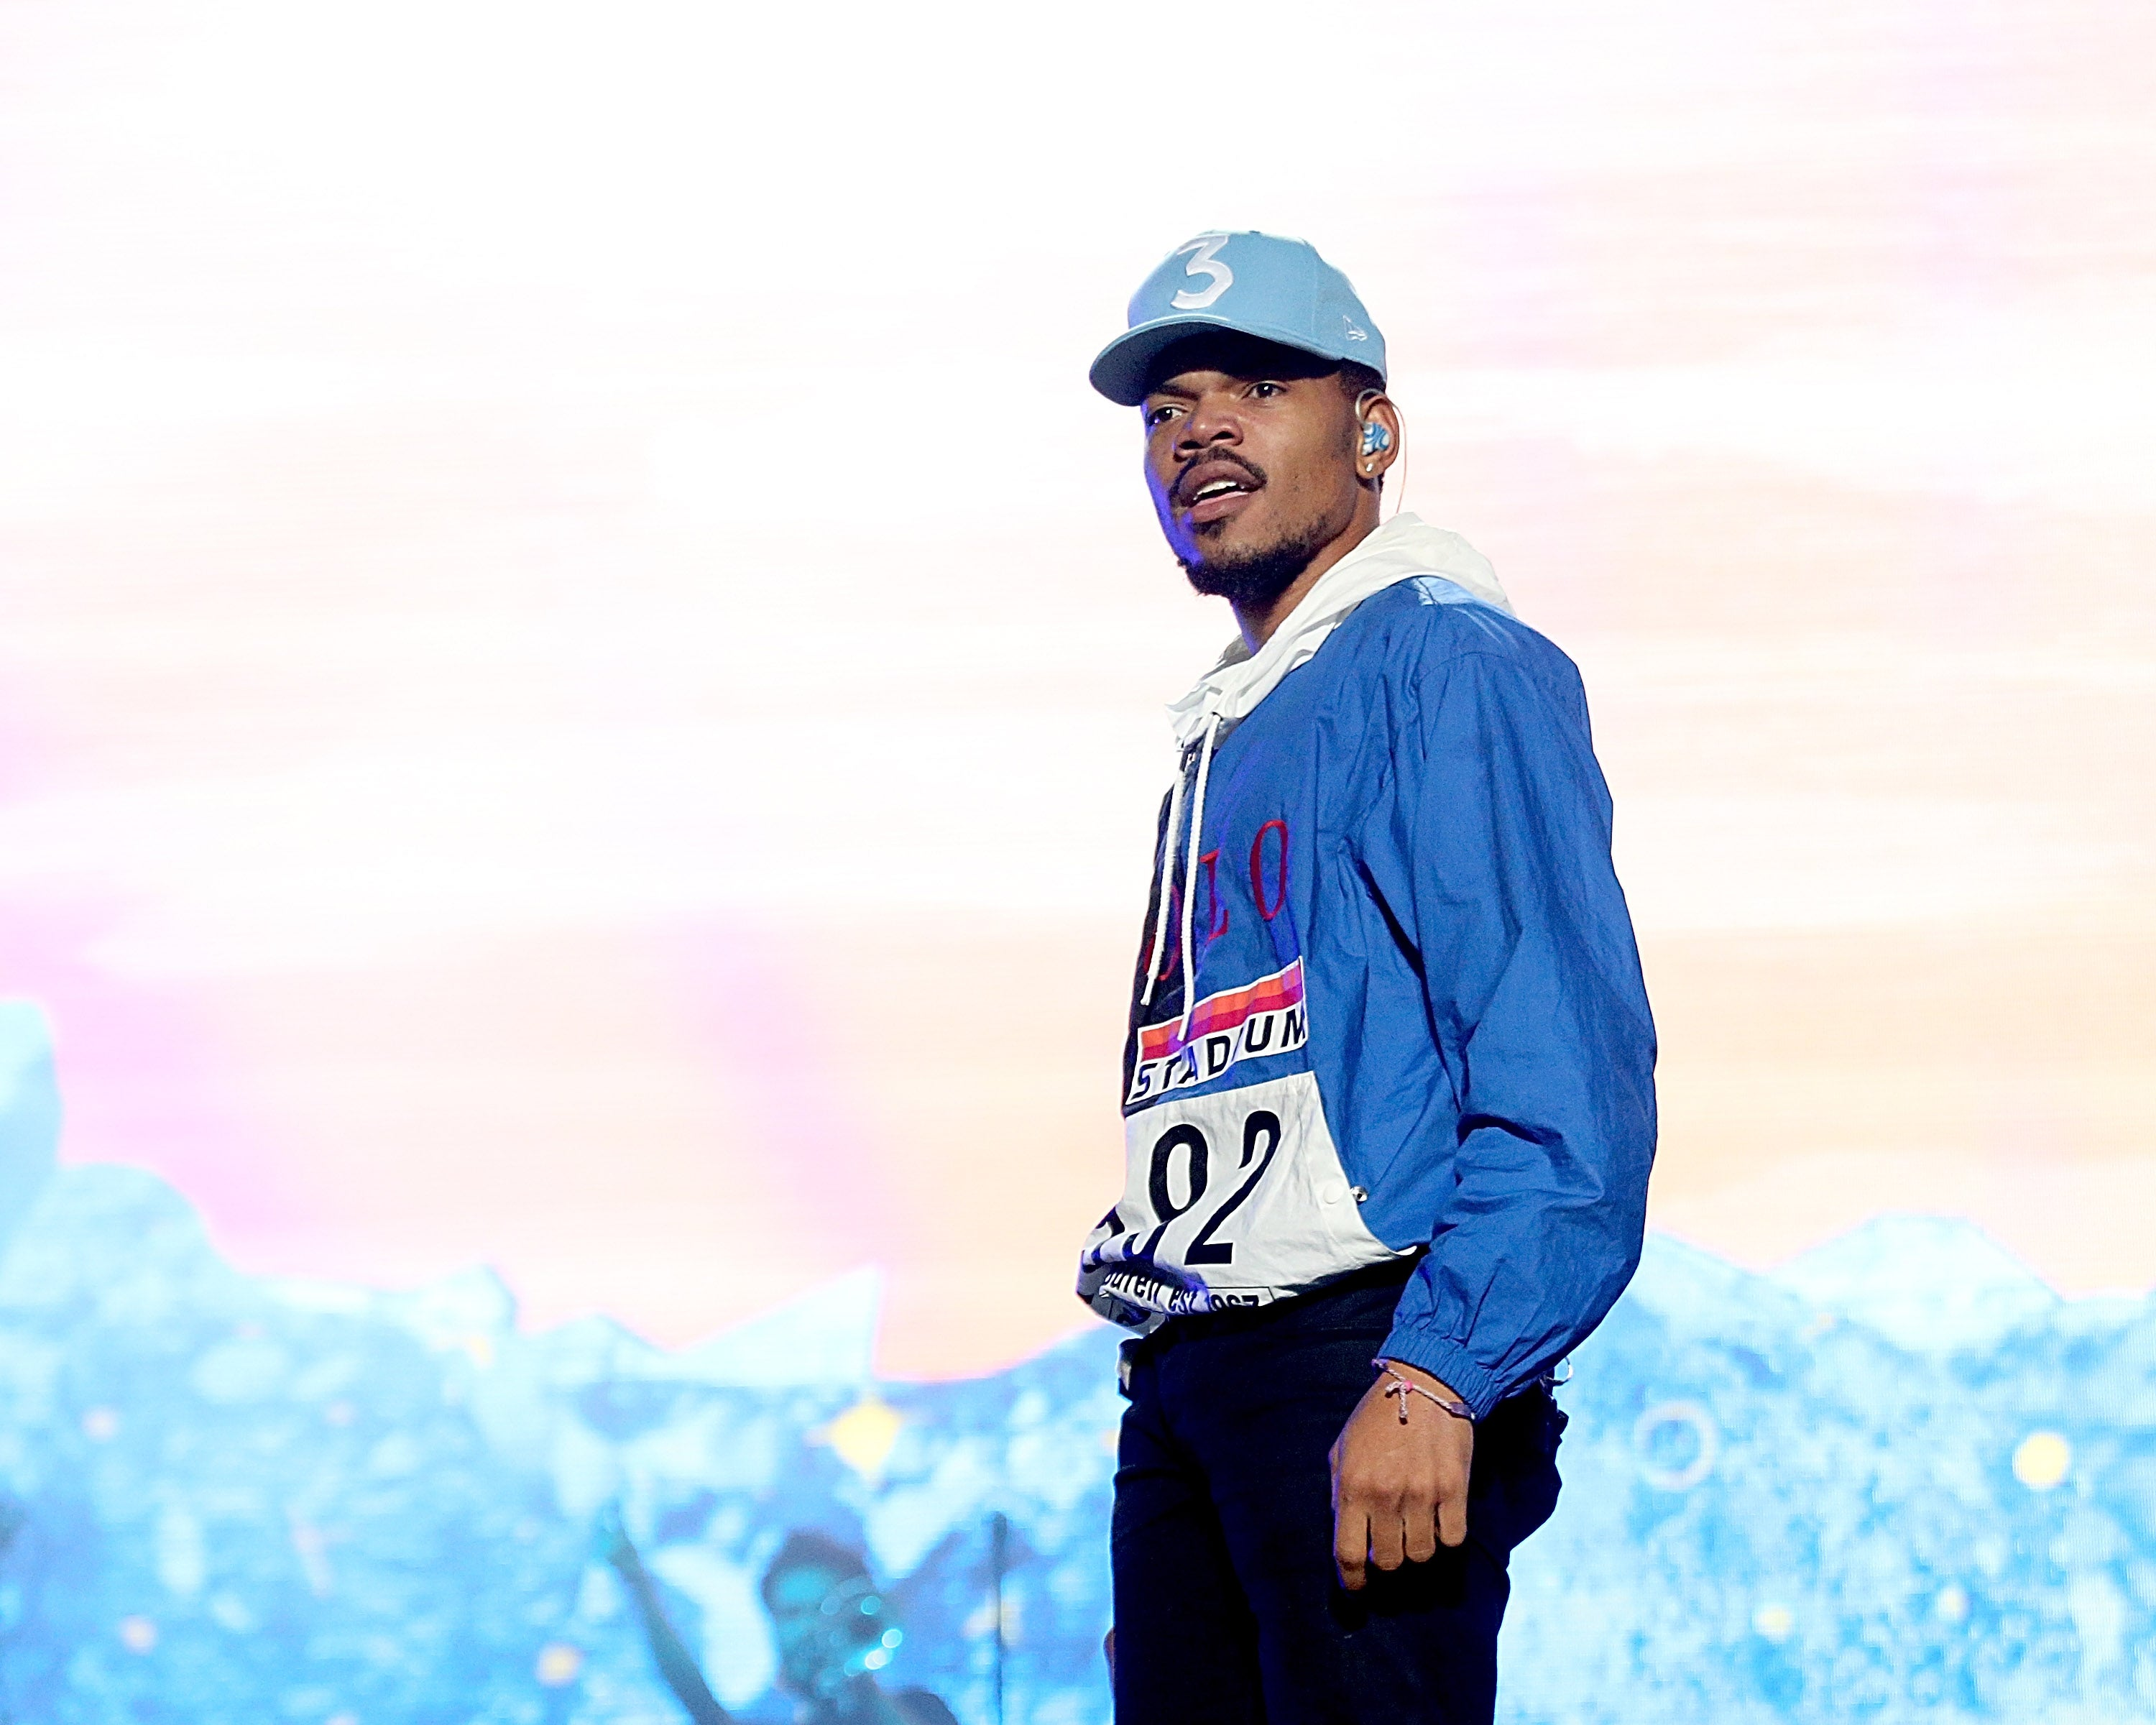 Chance The Rapper Speaks Out About The Problem With Chicago Building A $95 Million Police Academy